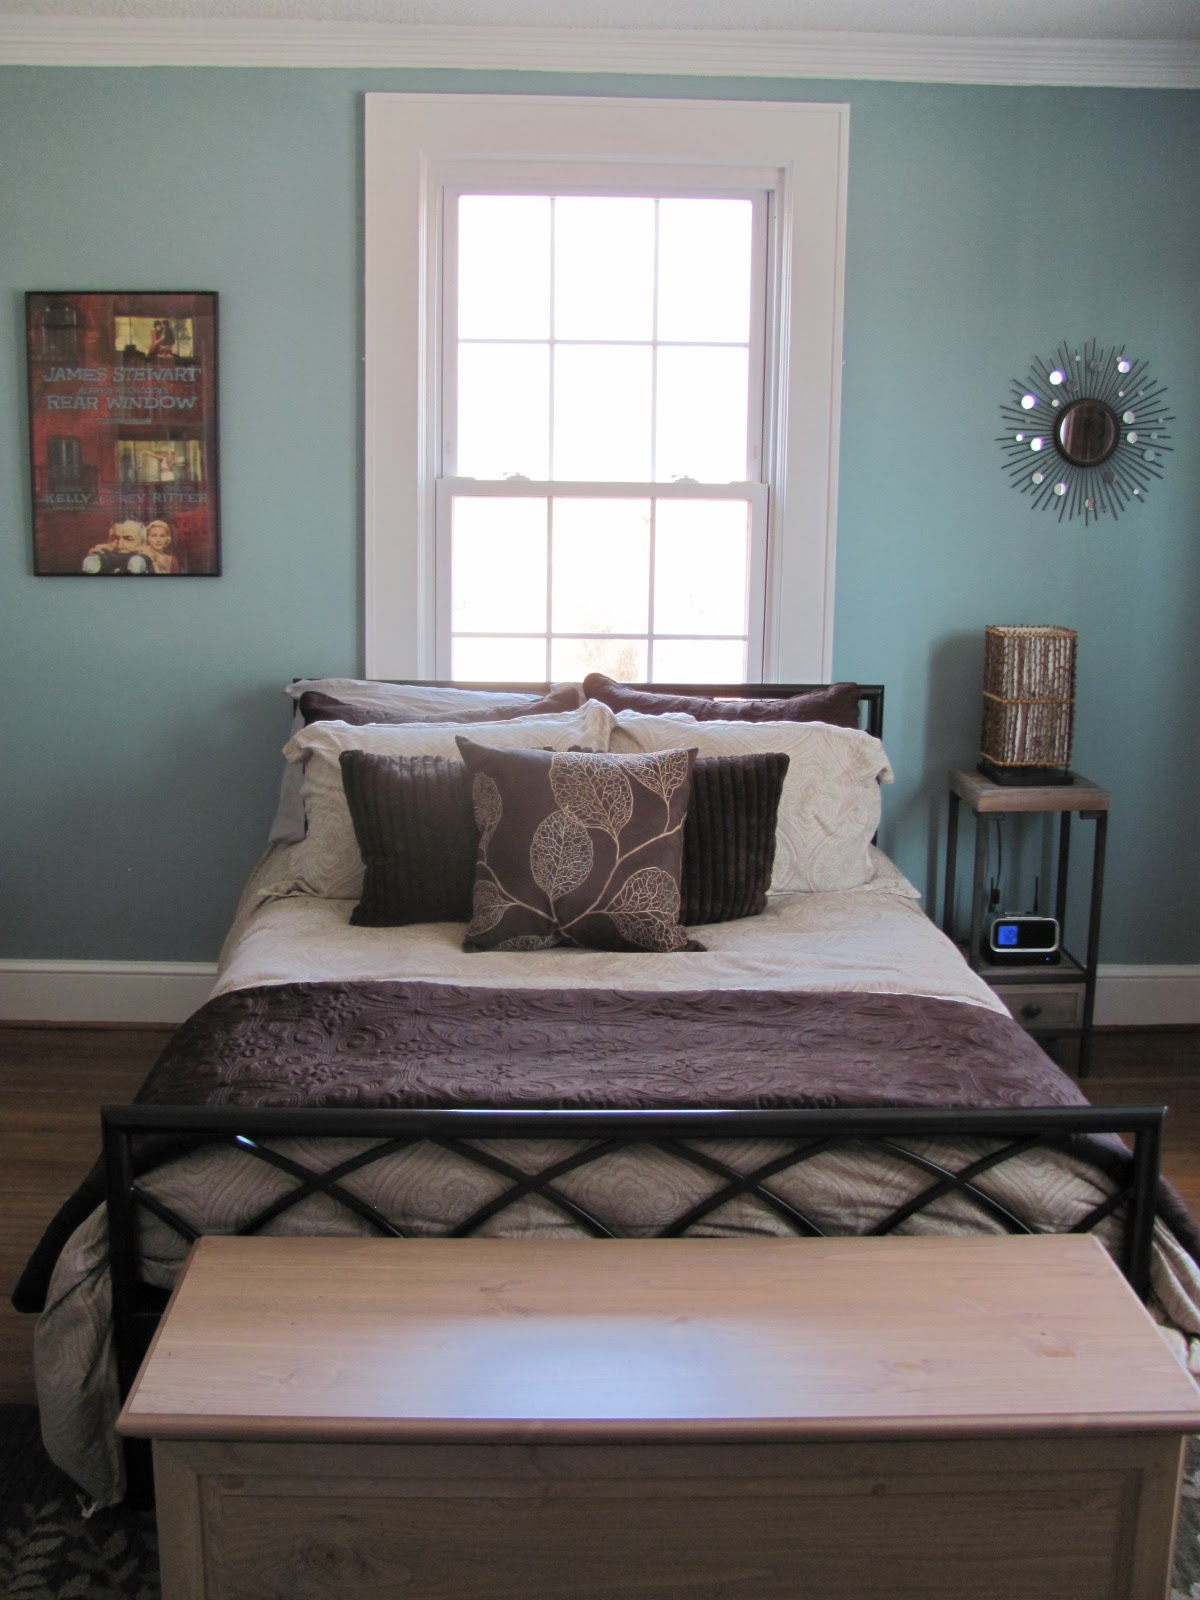 small guest bedroom after organization and redesign